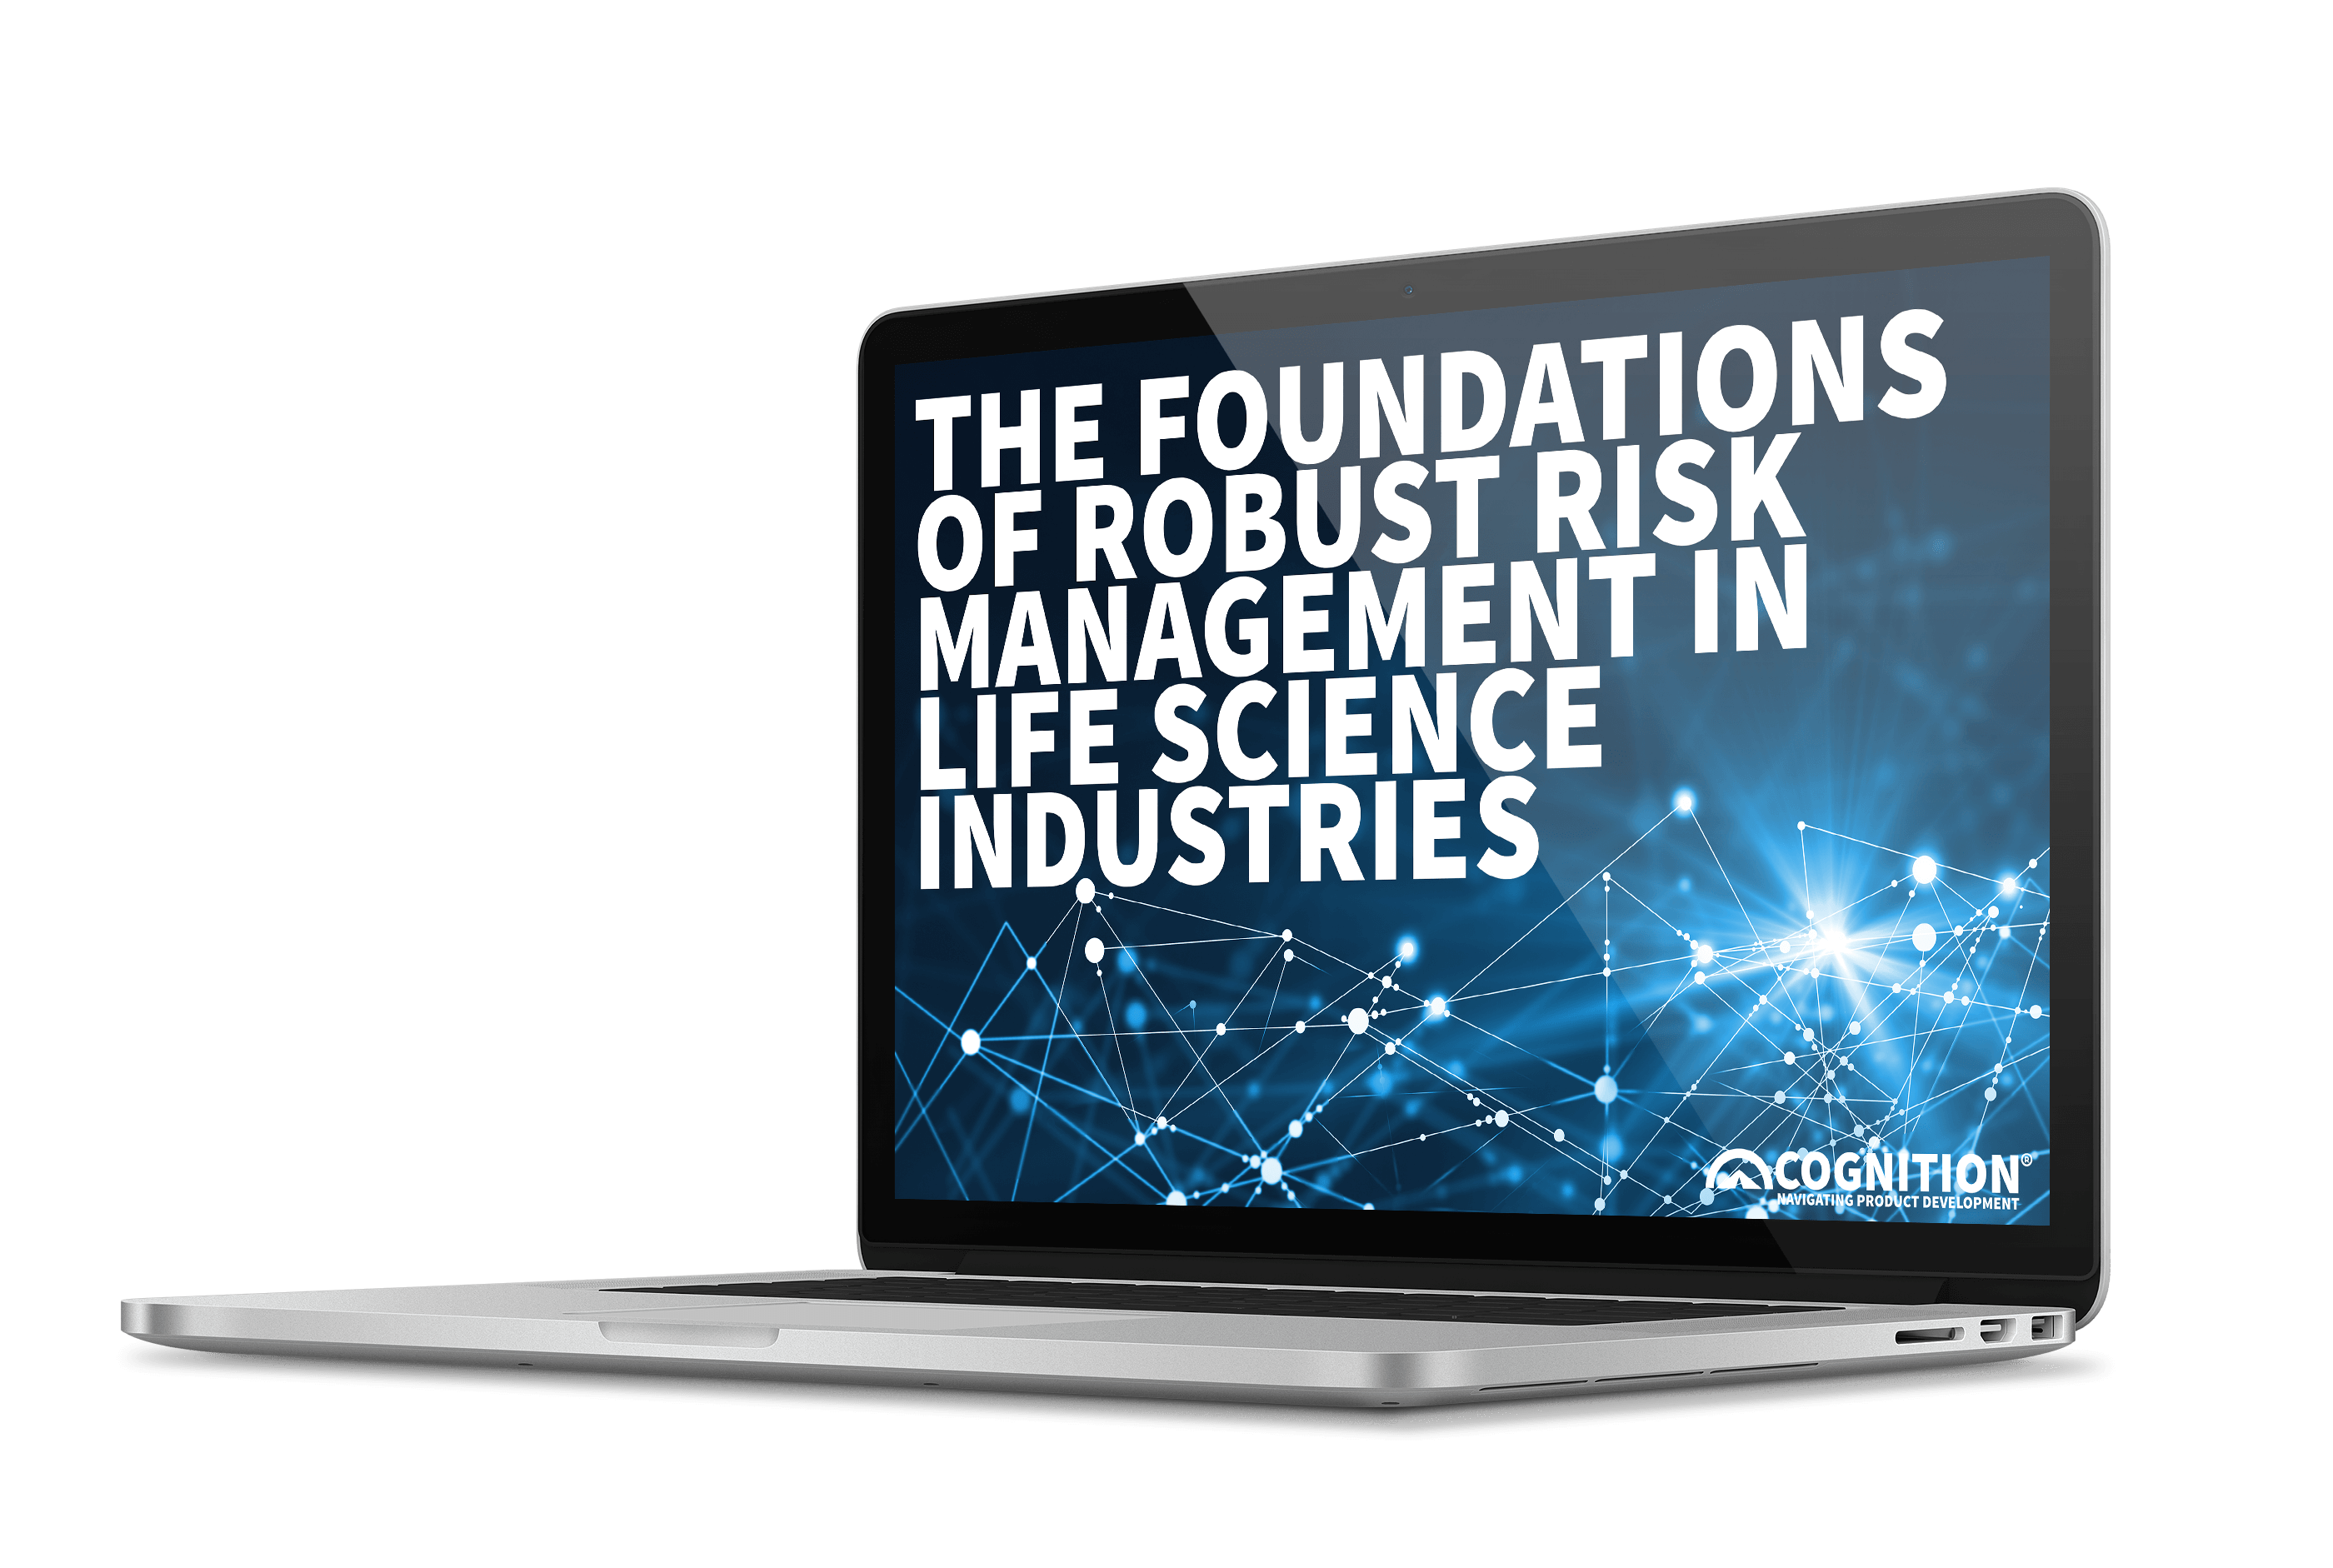 Cognition Corporation eBook: The Foundations of Robust Risk Management in Life Science Industries